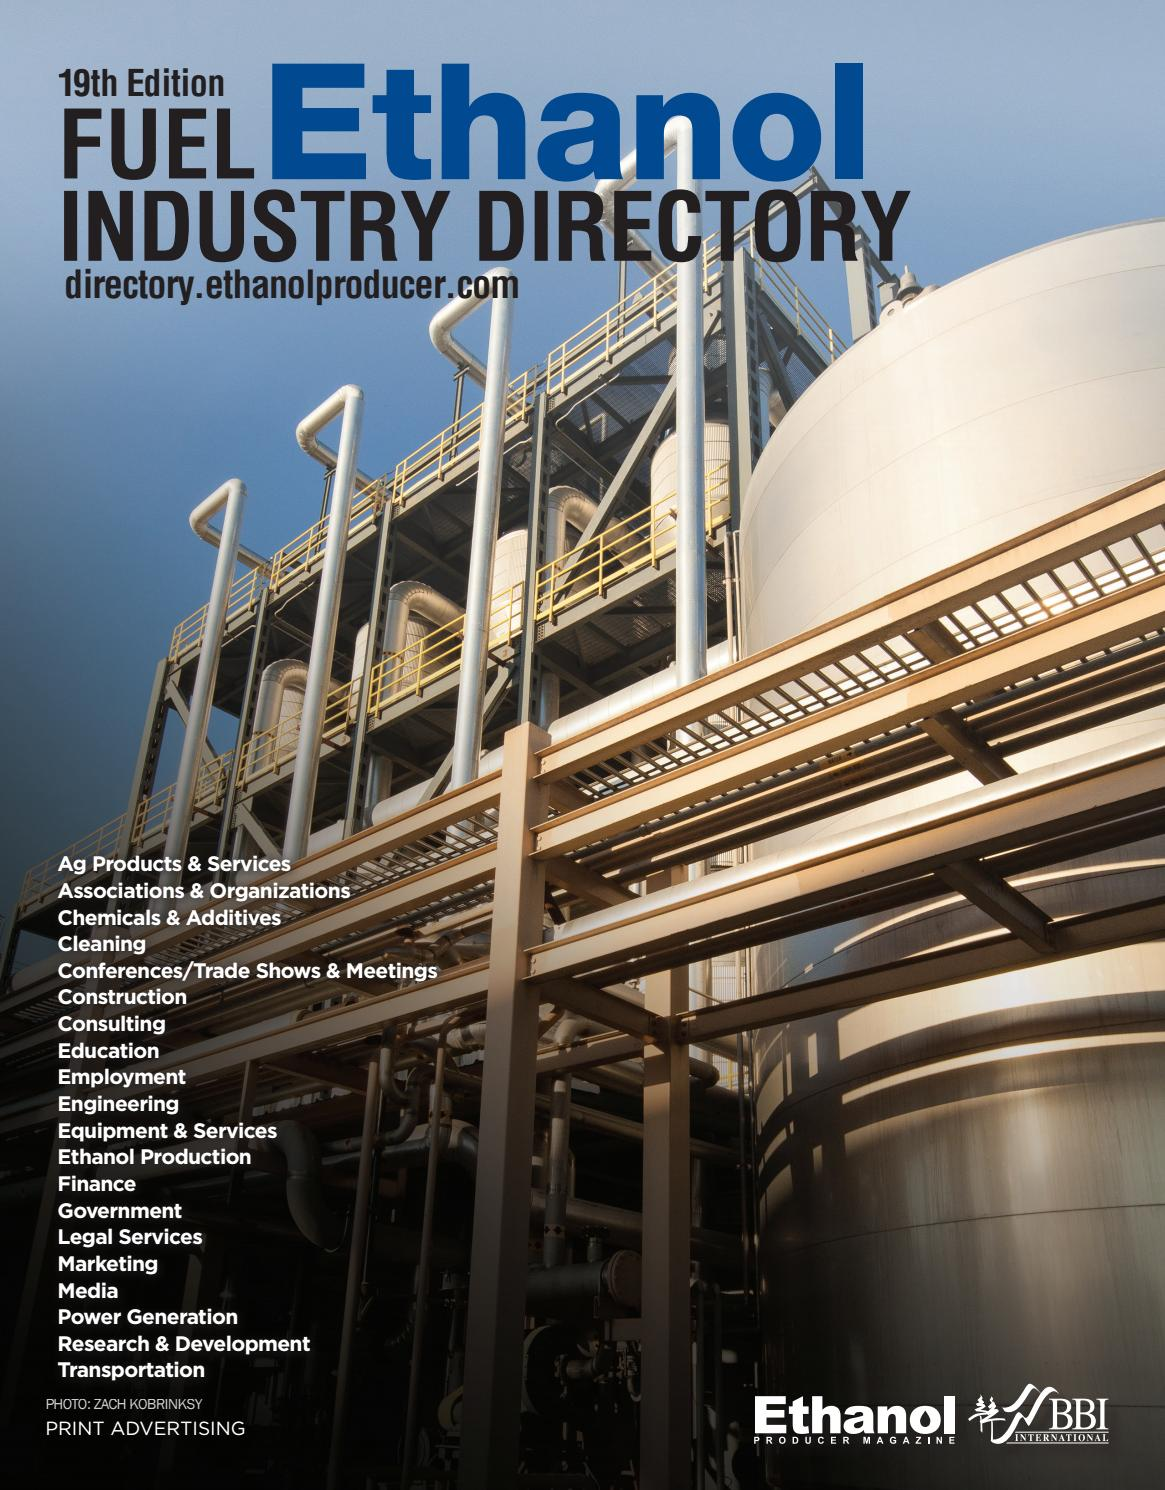 2019 Fuel Ethanol Industry Directory by BBI International